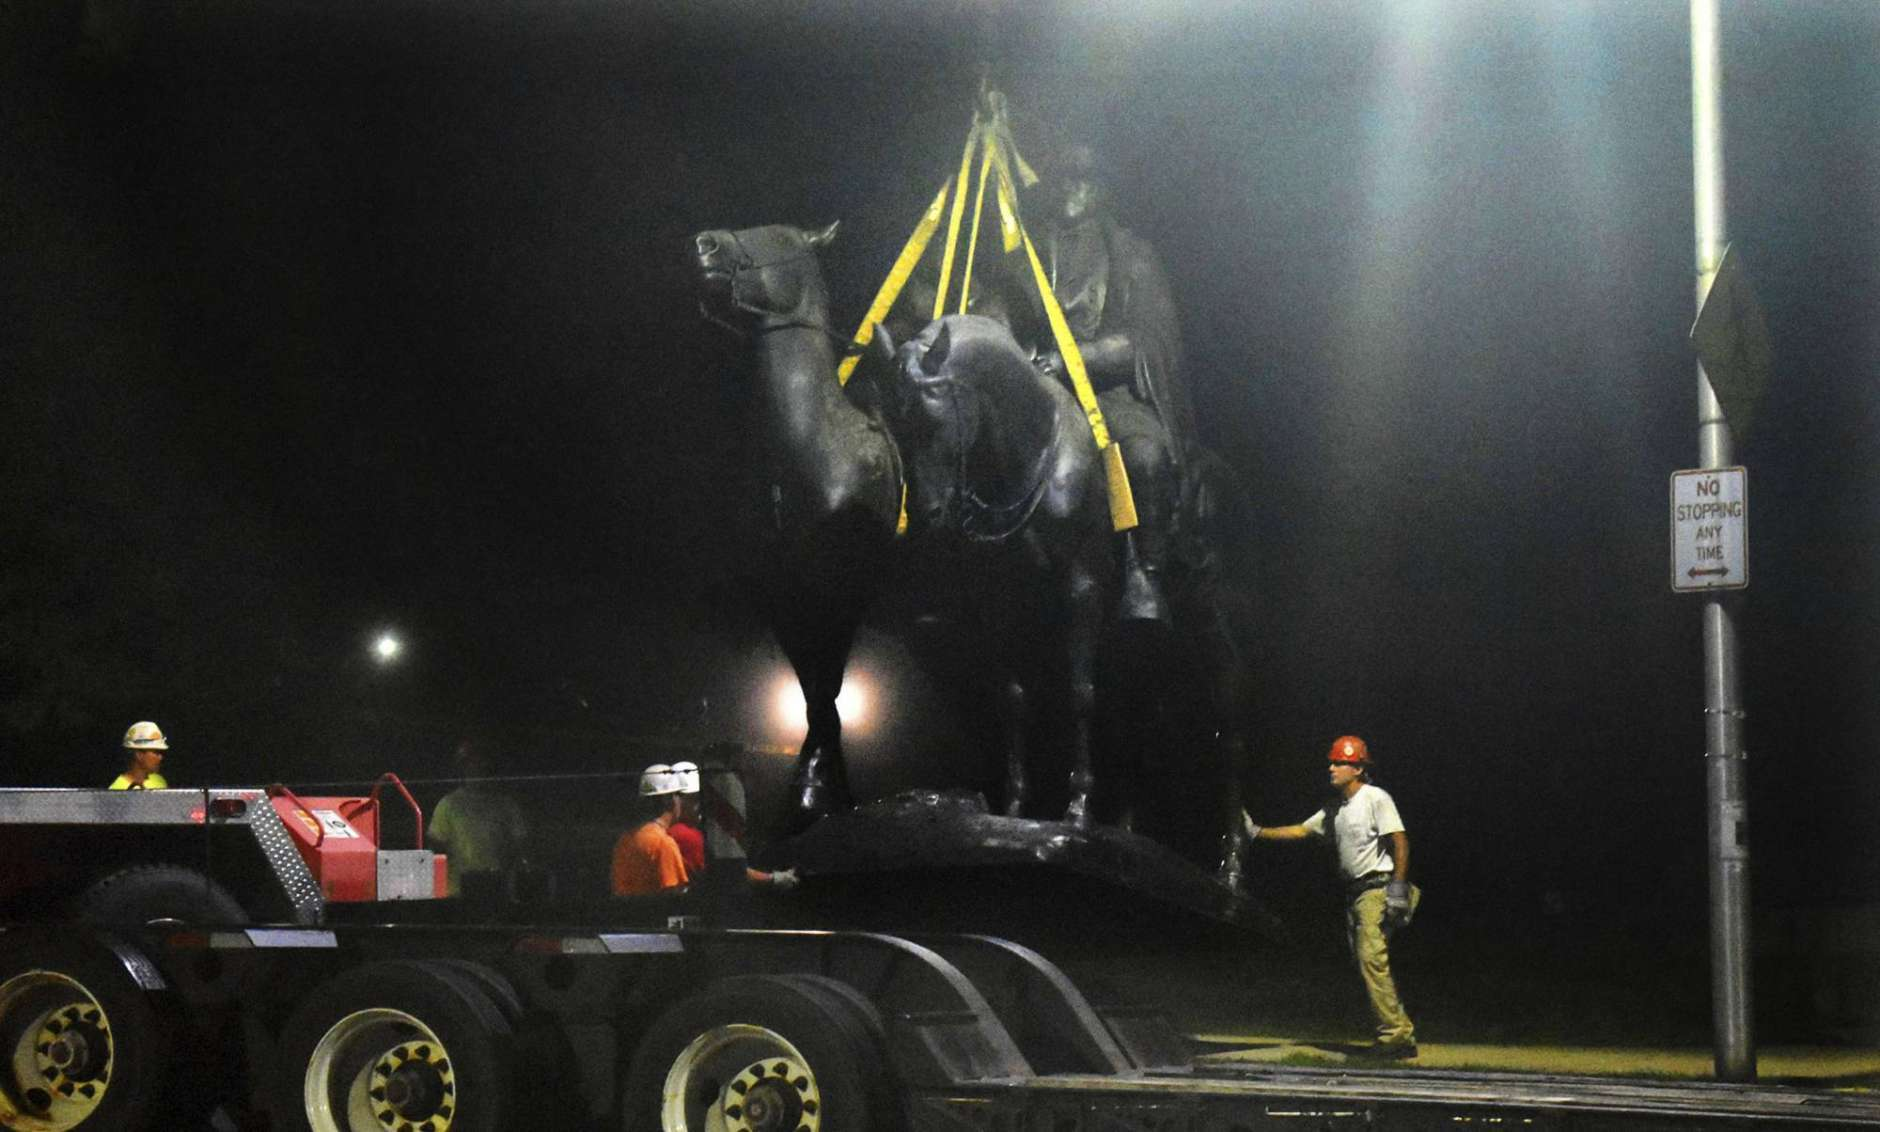 """Workers remove the Robert E. Lee and Thomas J. """"Stonewall"""" Jackson monument in Wyman Park early Wednesday, Aug. 16, 2017, in Baltimore. Local news outlets reported that workers hauled several monuments away, days after a white nationalist rally in Virginia turned deadly. (Denise Sanders/The Baltimore Sun via AP)"""